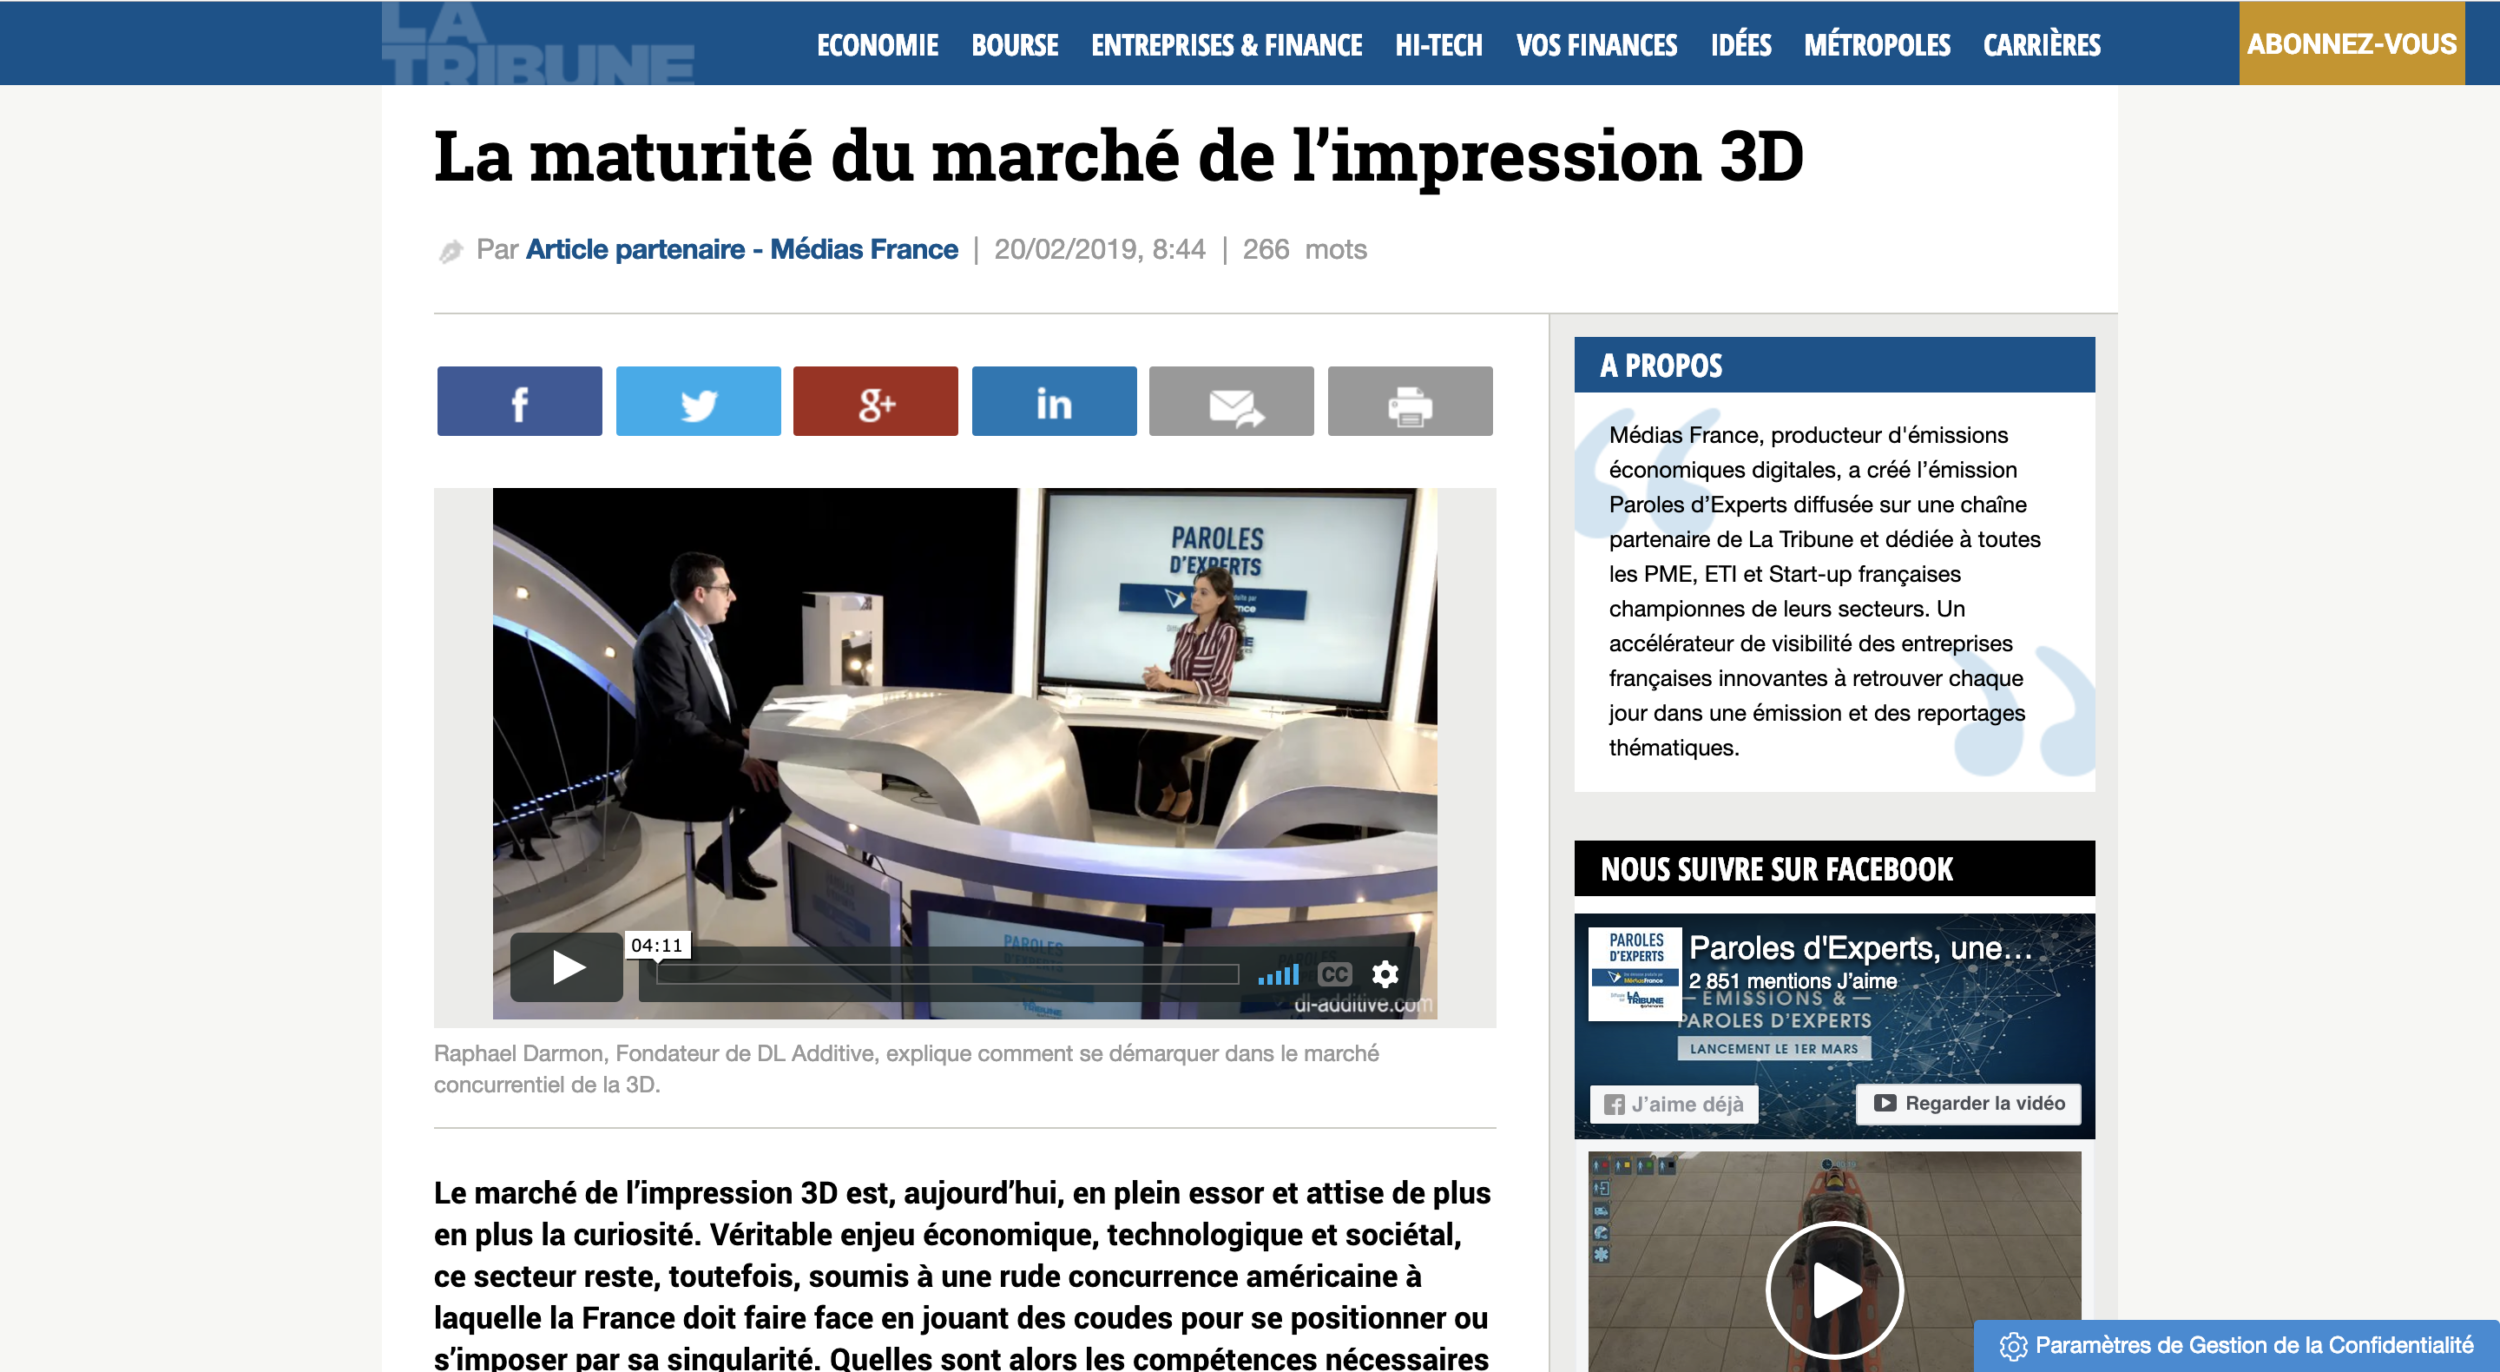 article-dl-additive-la-tribune Espace presse